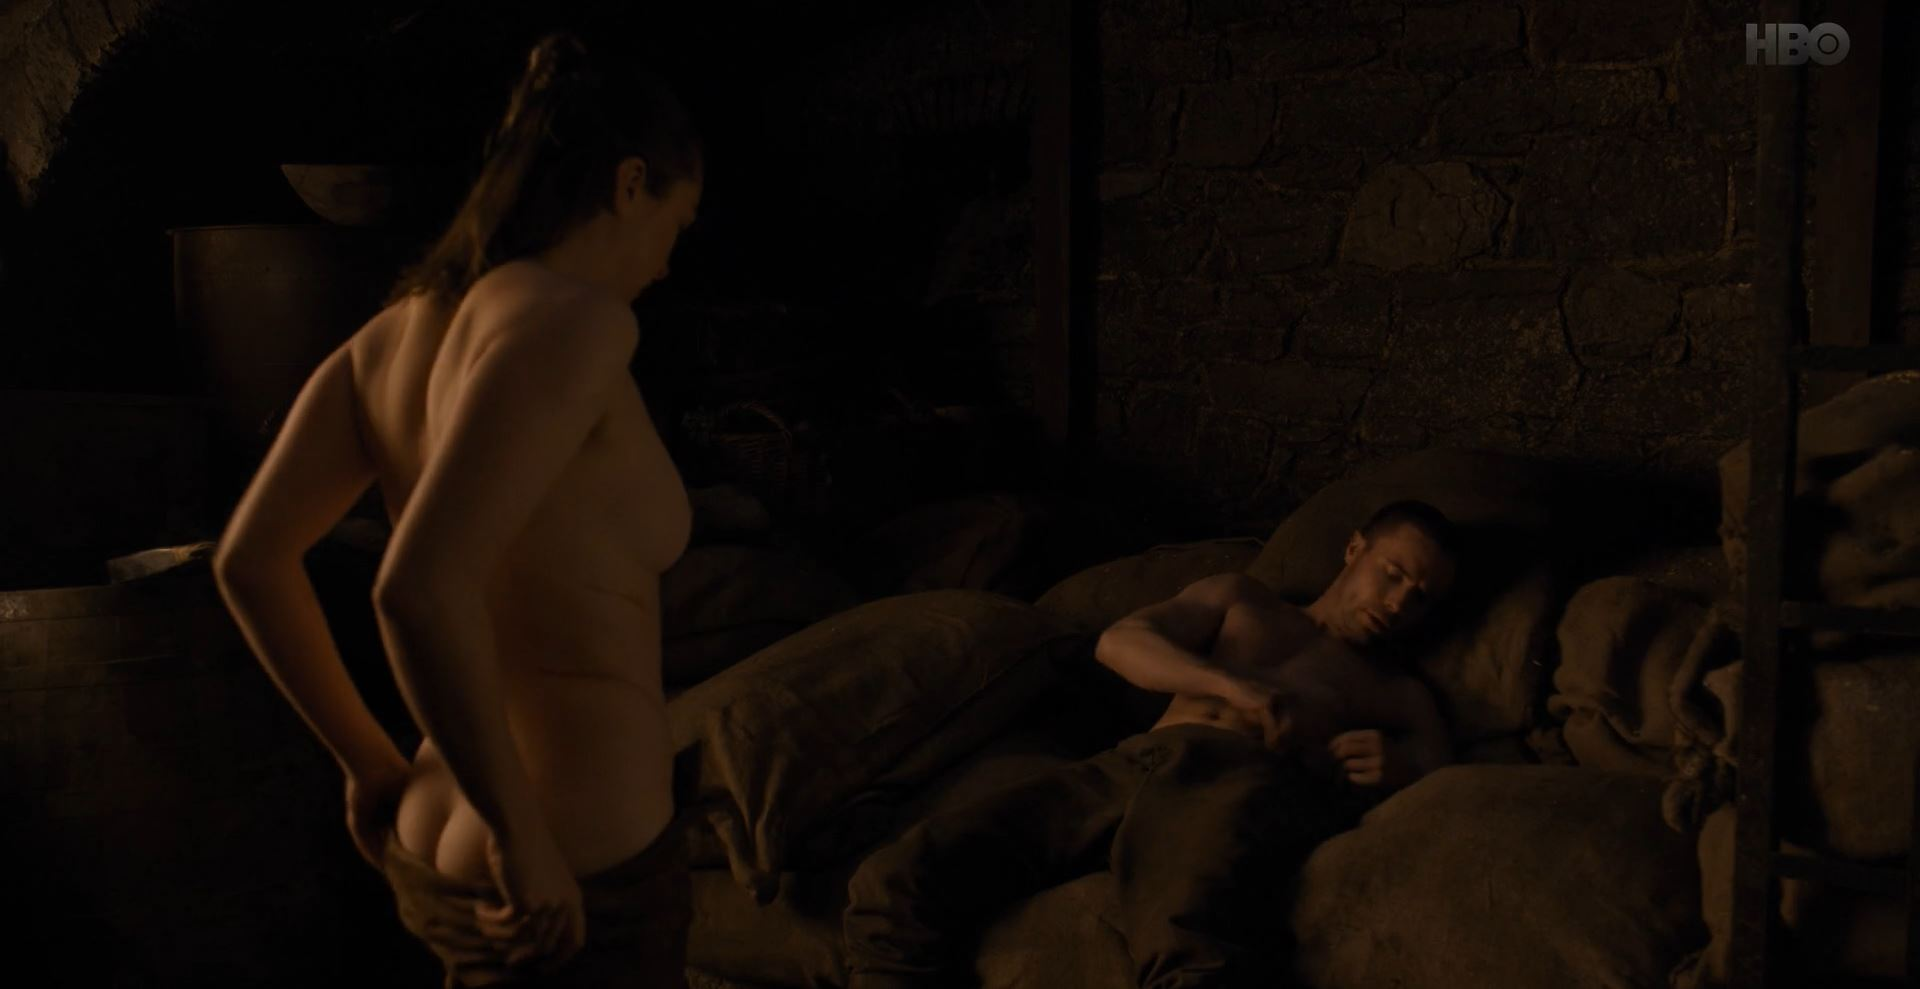 Game of Thrones S08E02 A Knight of the Seven Kingdoms Review - Arya nude about to have sex with Gendry